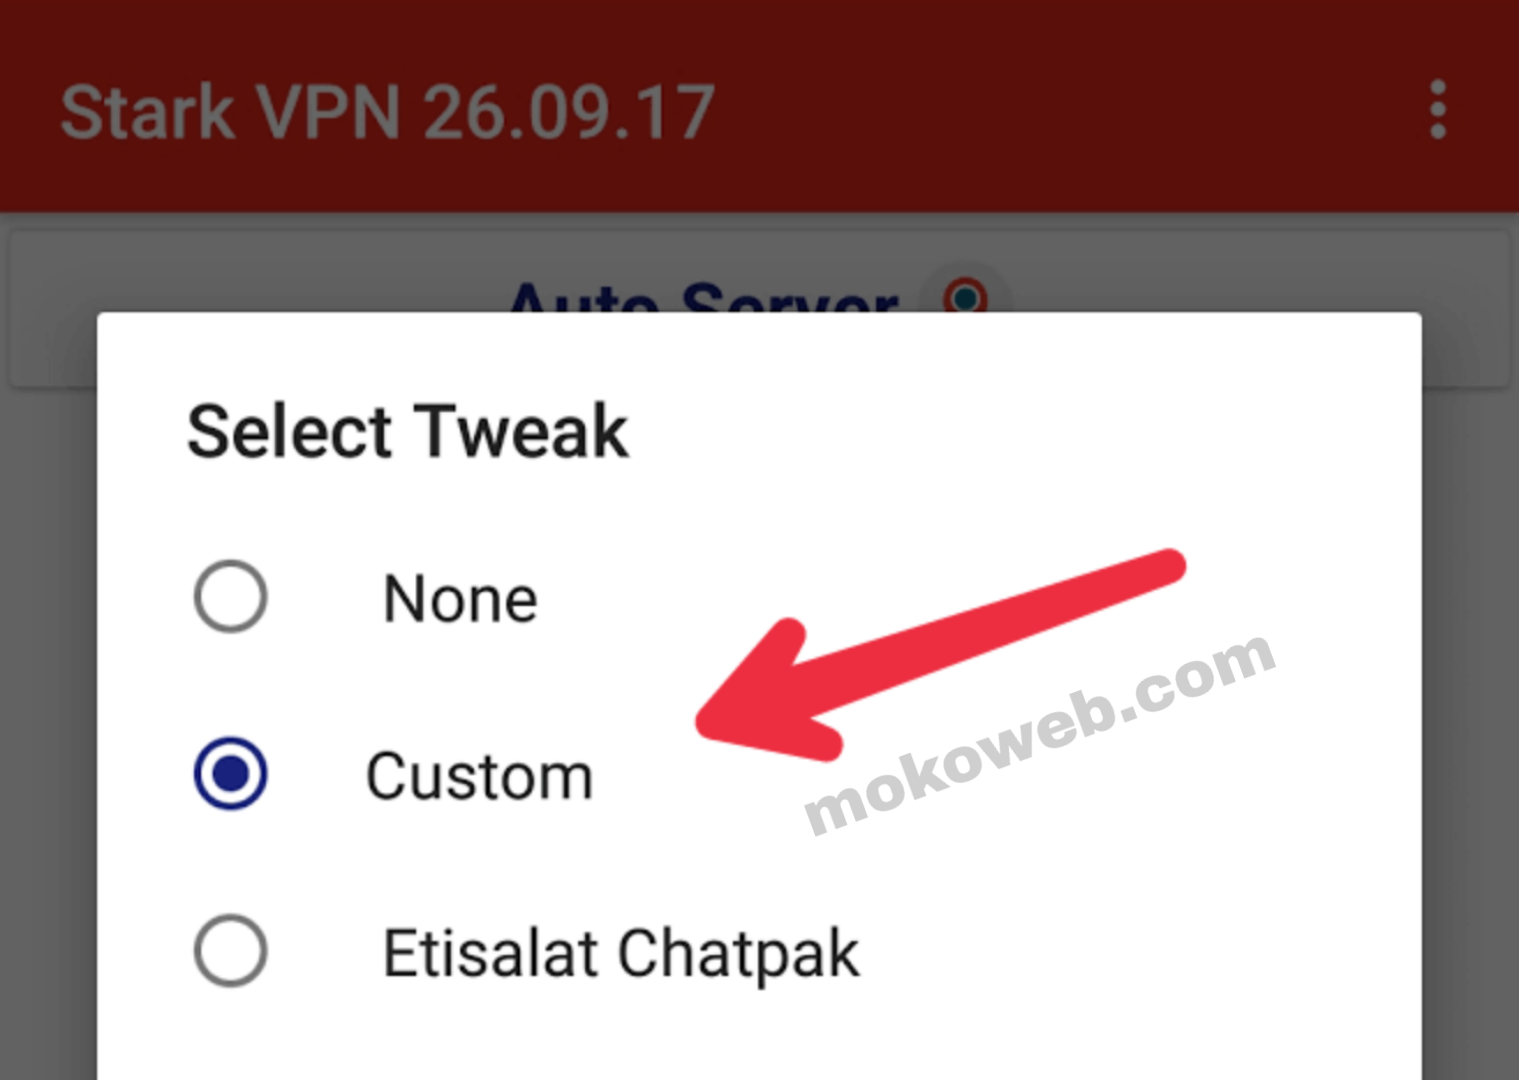 Stark vpn settings for mtn mpulse free browsing cheat